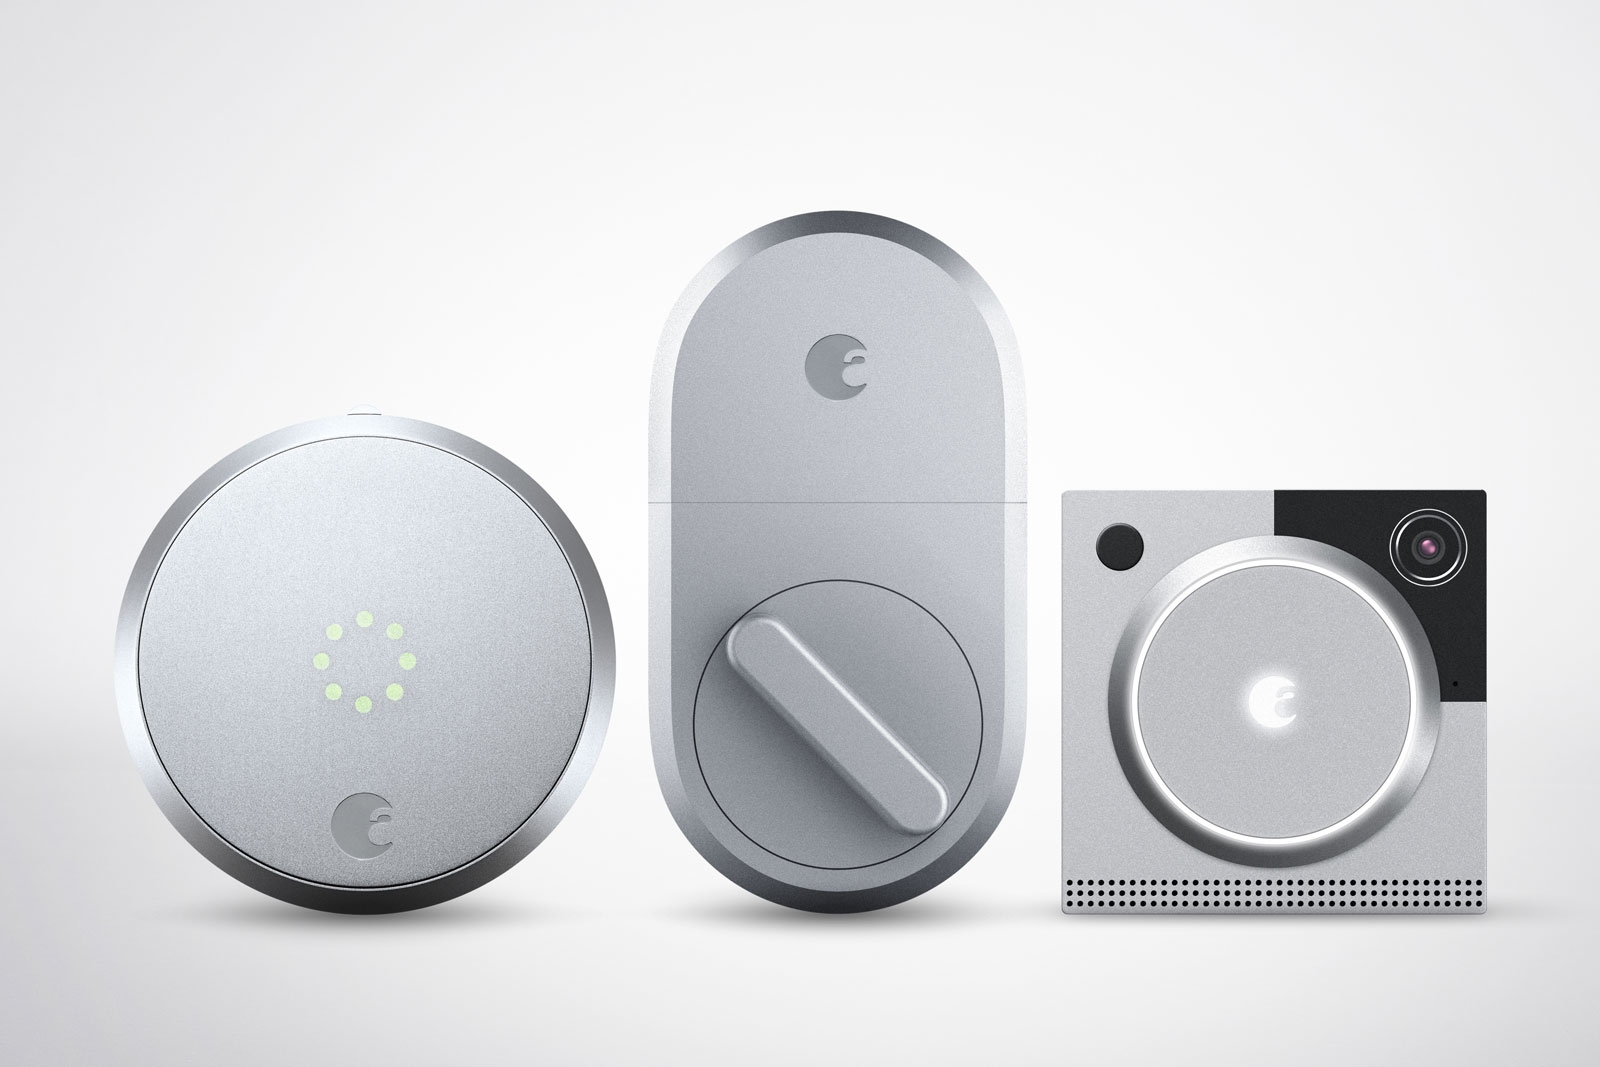 August's latest smart locks warn if you left the door open | DeviceDaily.com